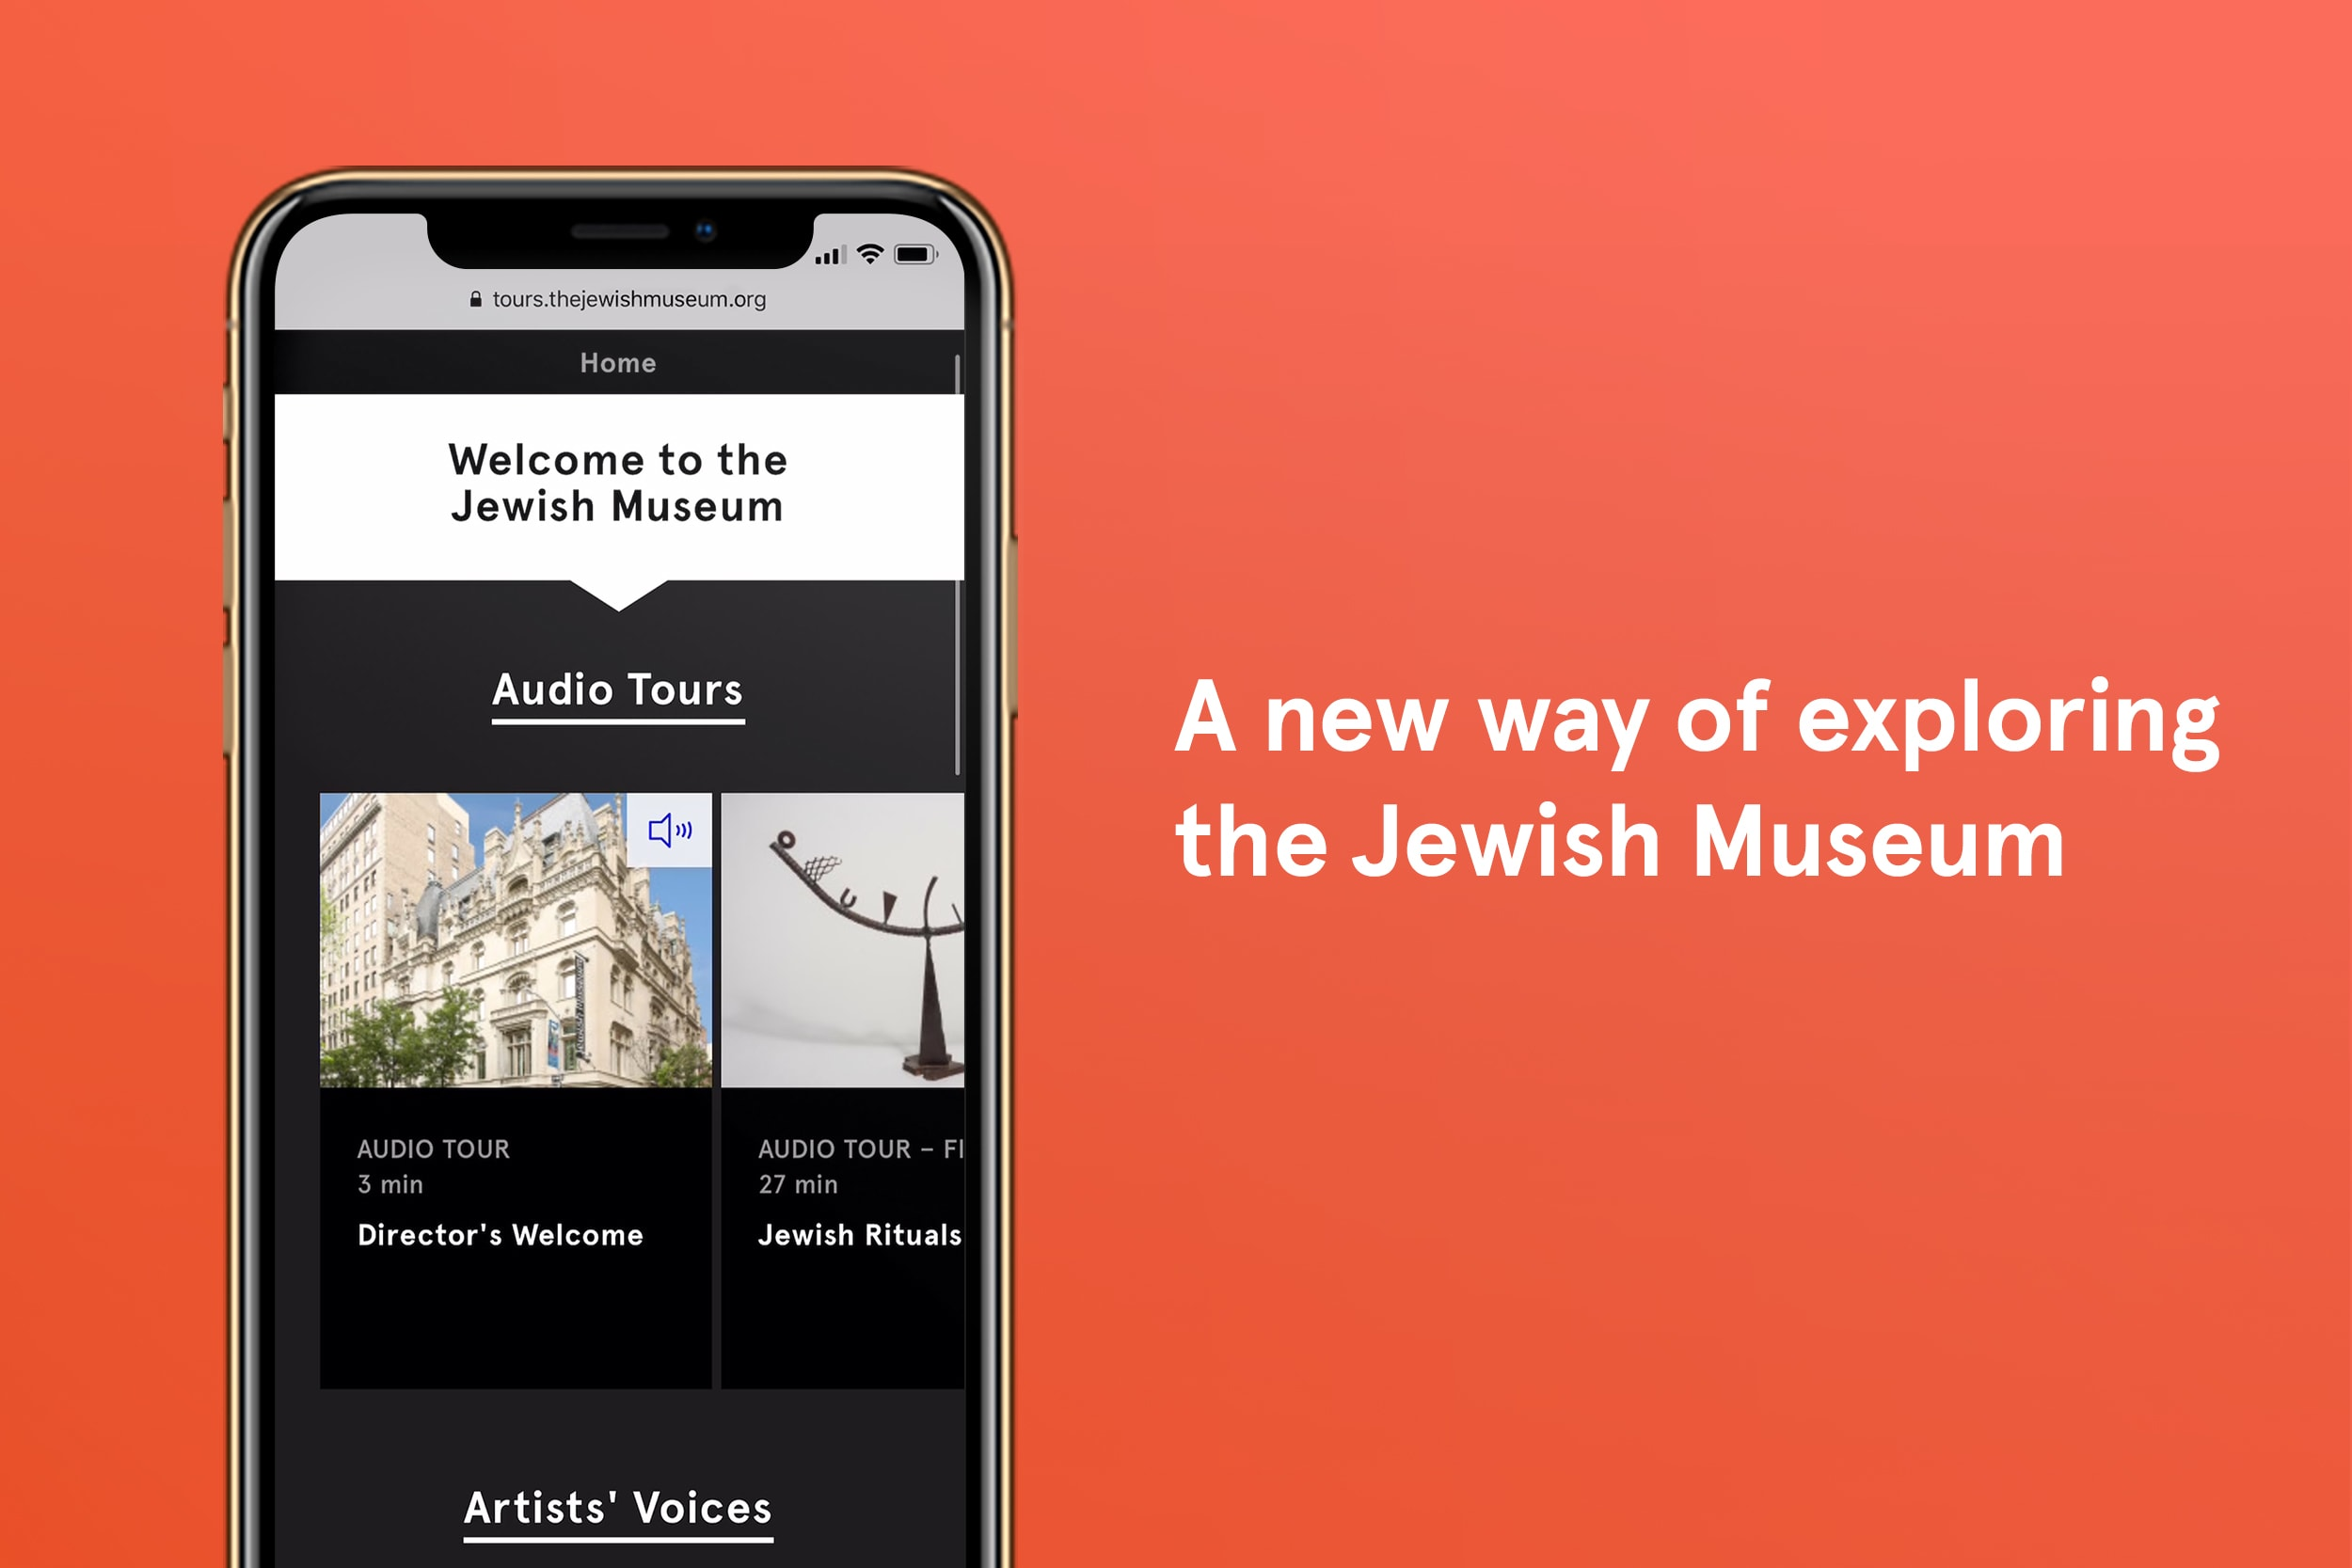 The Jewish Museum Launches New Audio Tours Featuring a Range of Perspectives, Available on All Devices